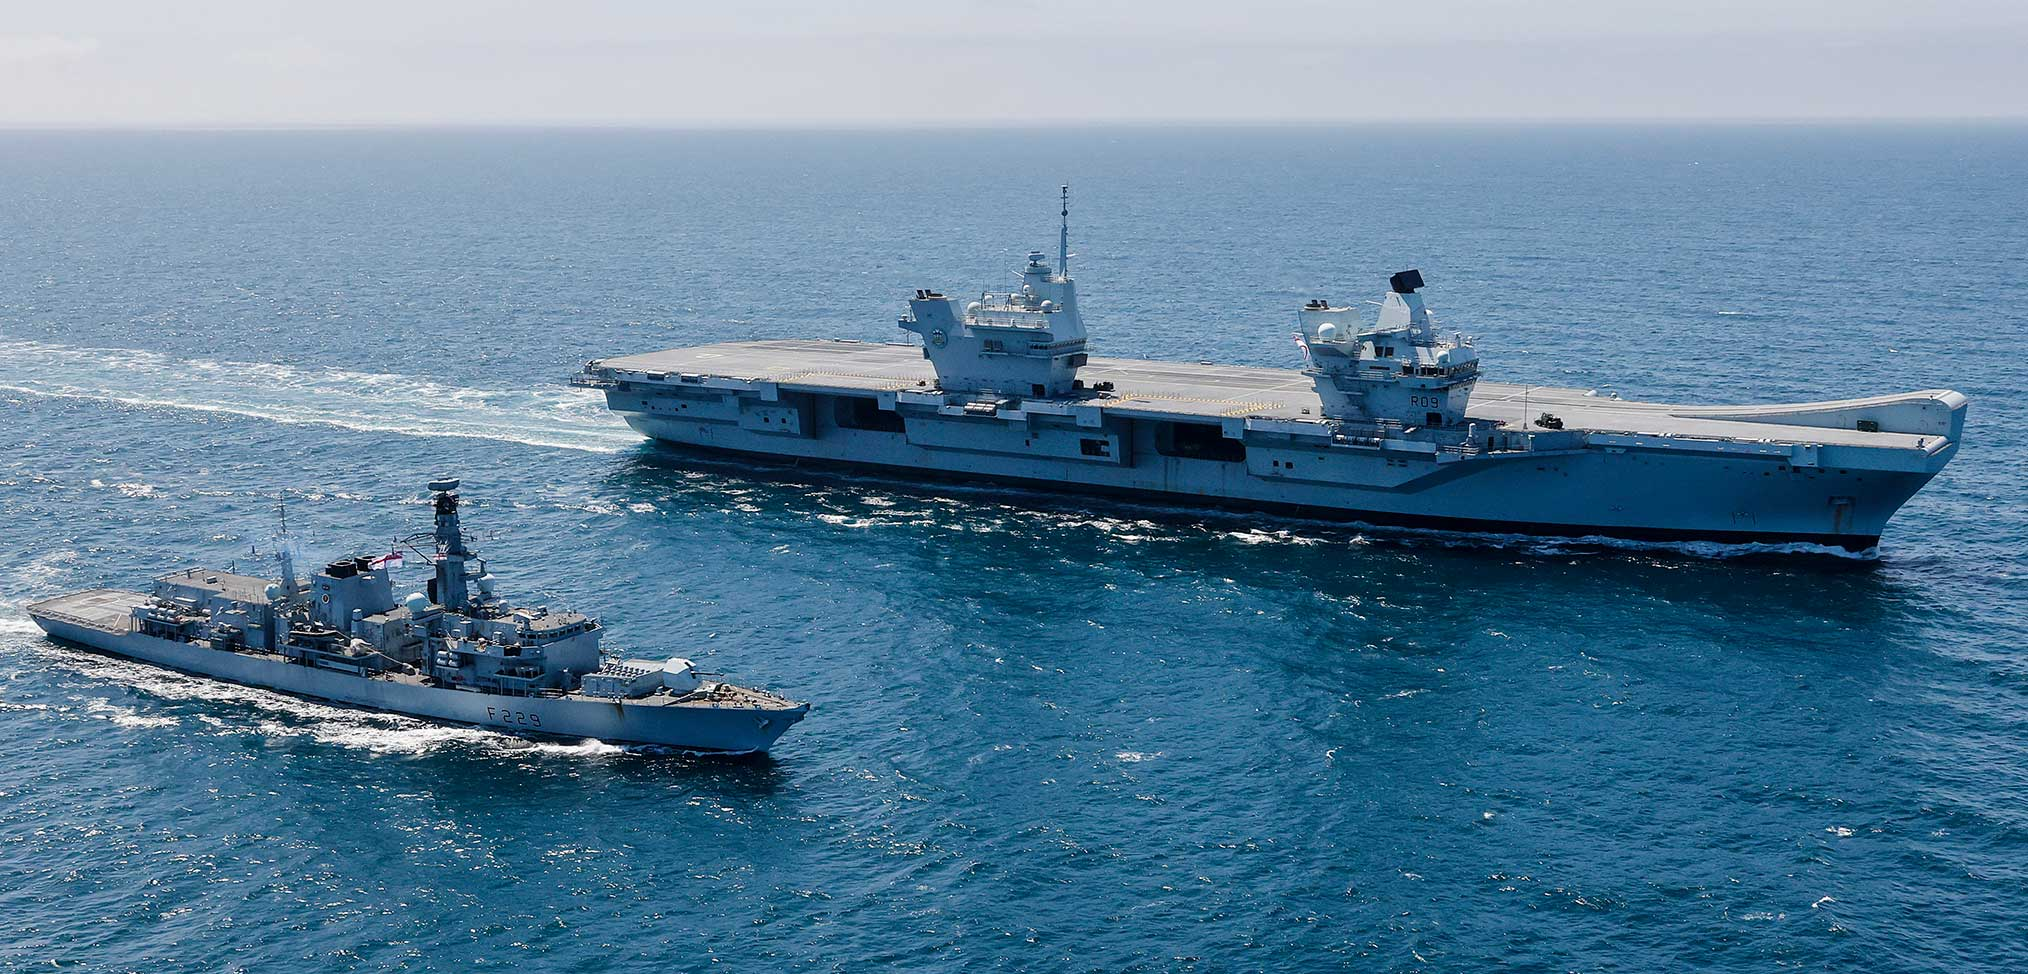 The First Sea Lord's upbeat message about the state of the Royal Navy